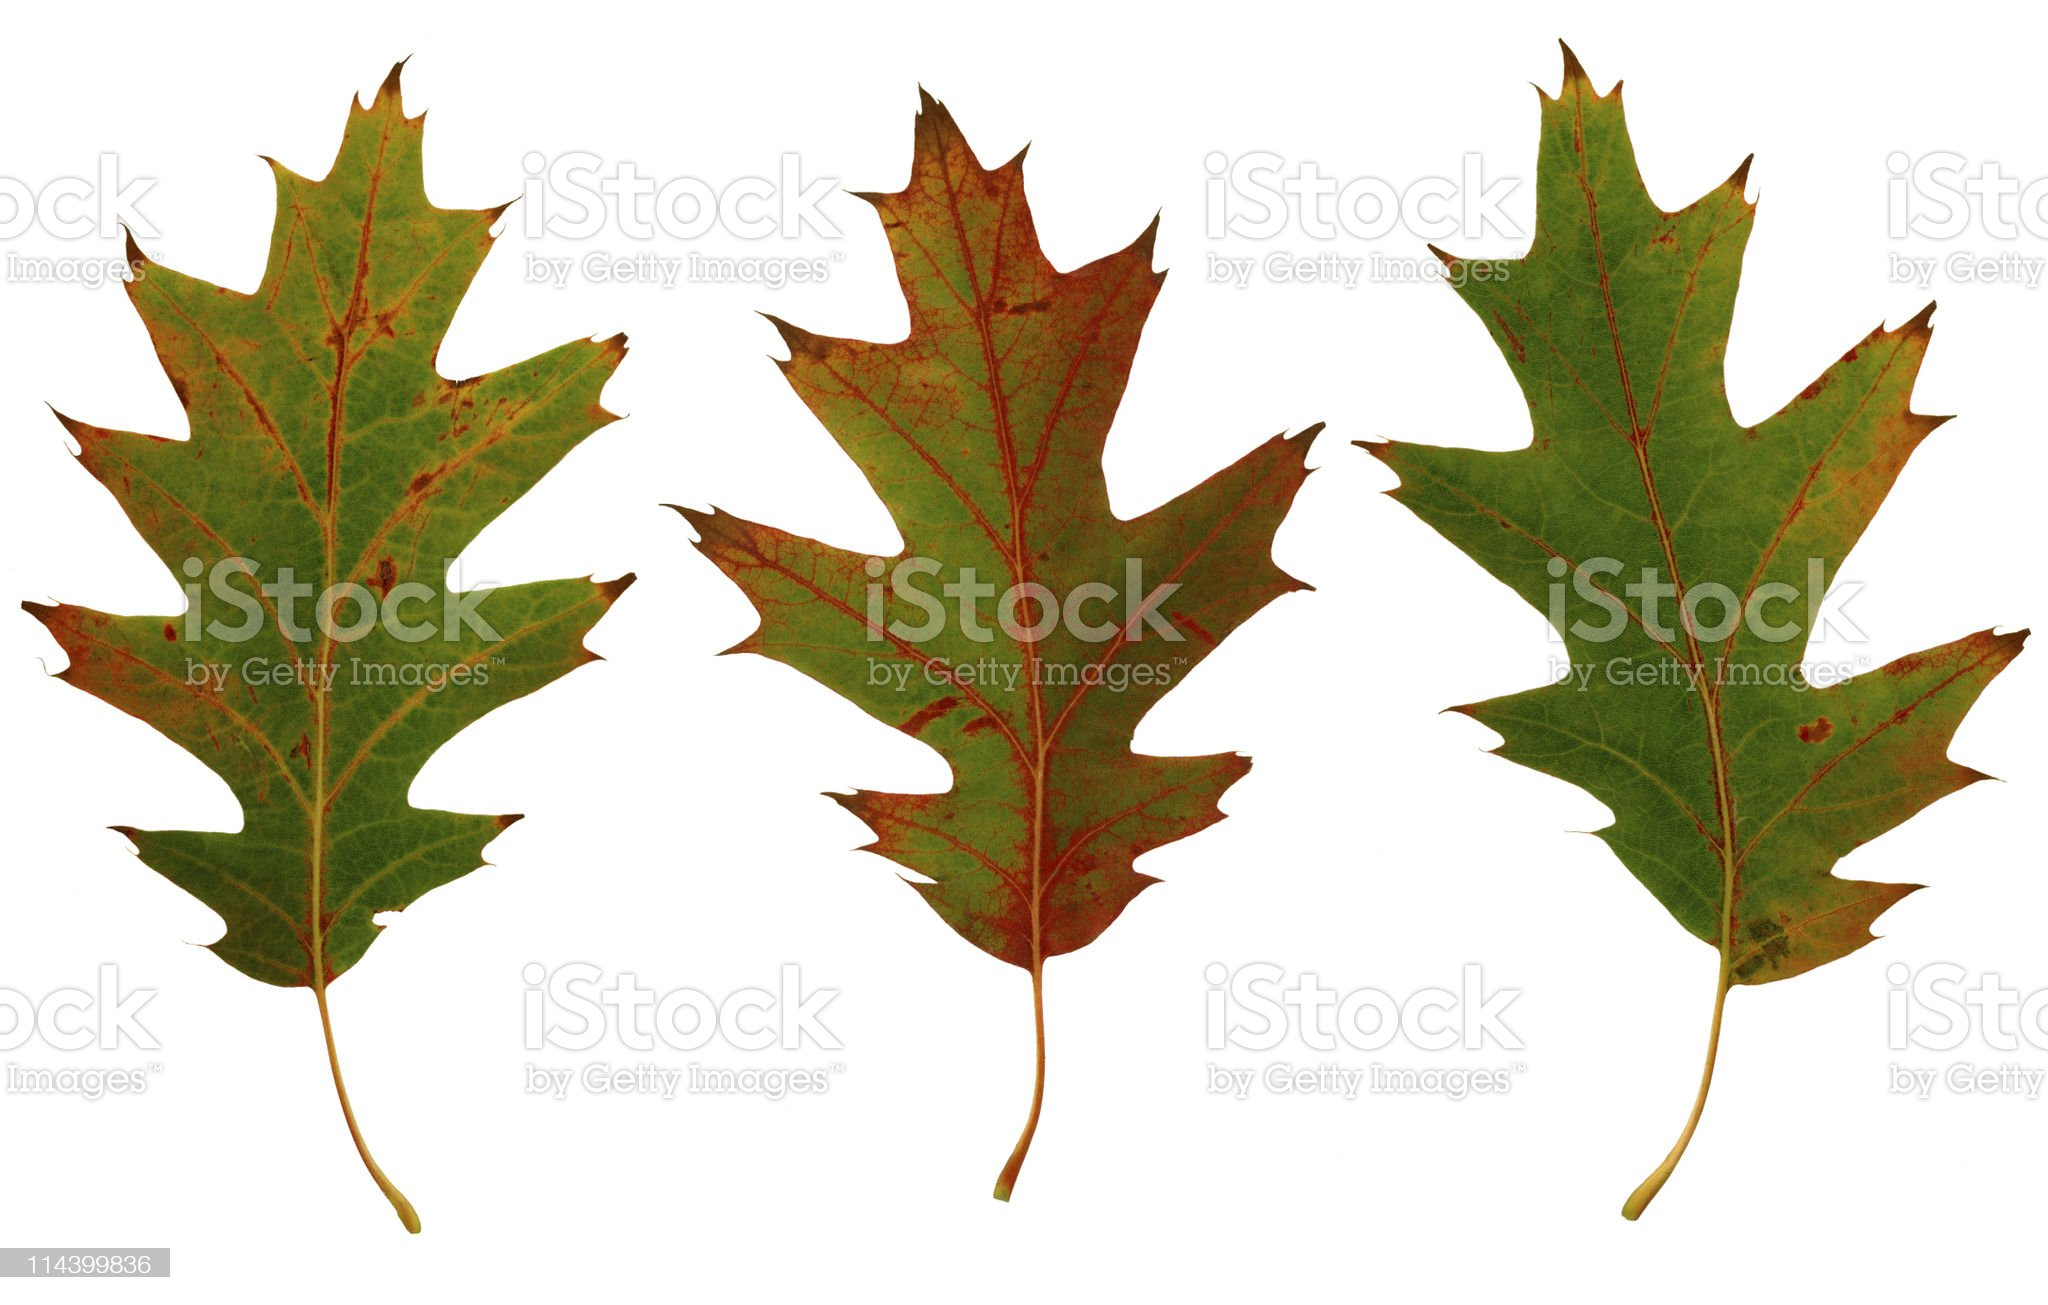 Three Autumn Leaves royalty-free stock photo